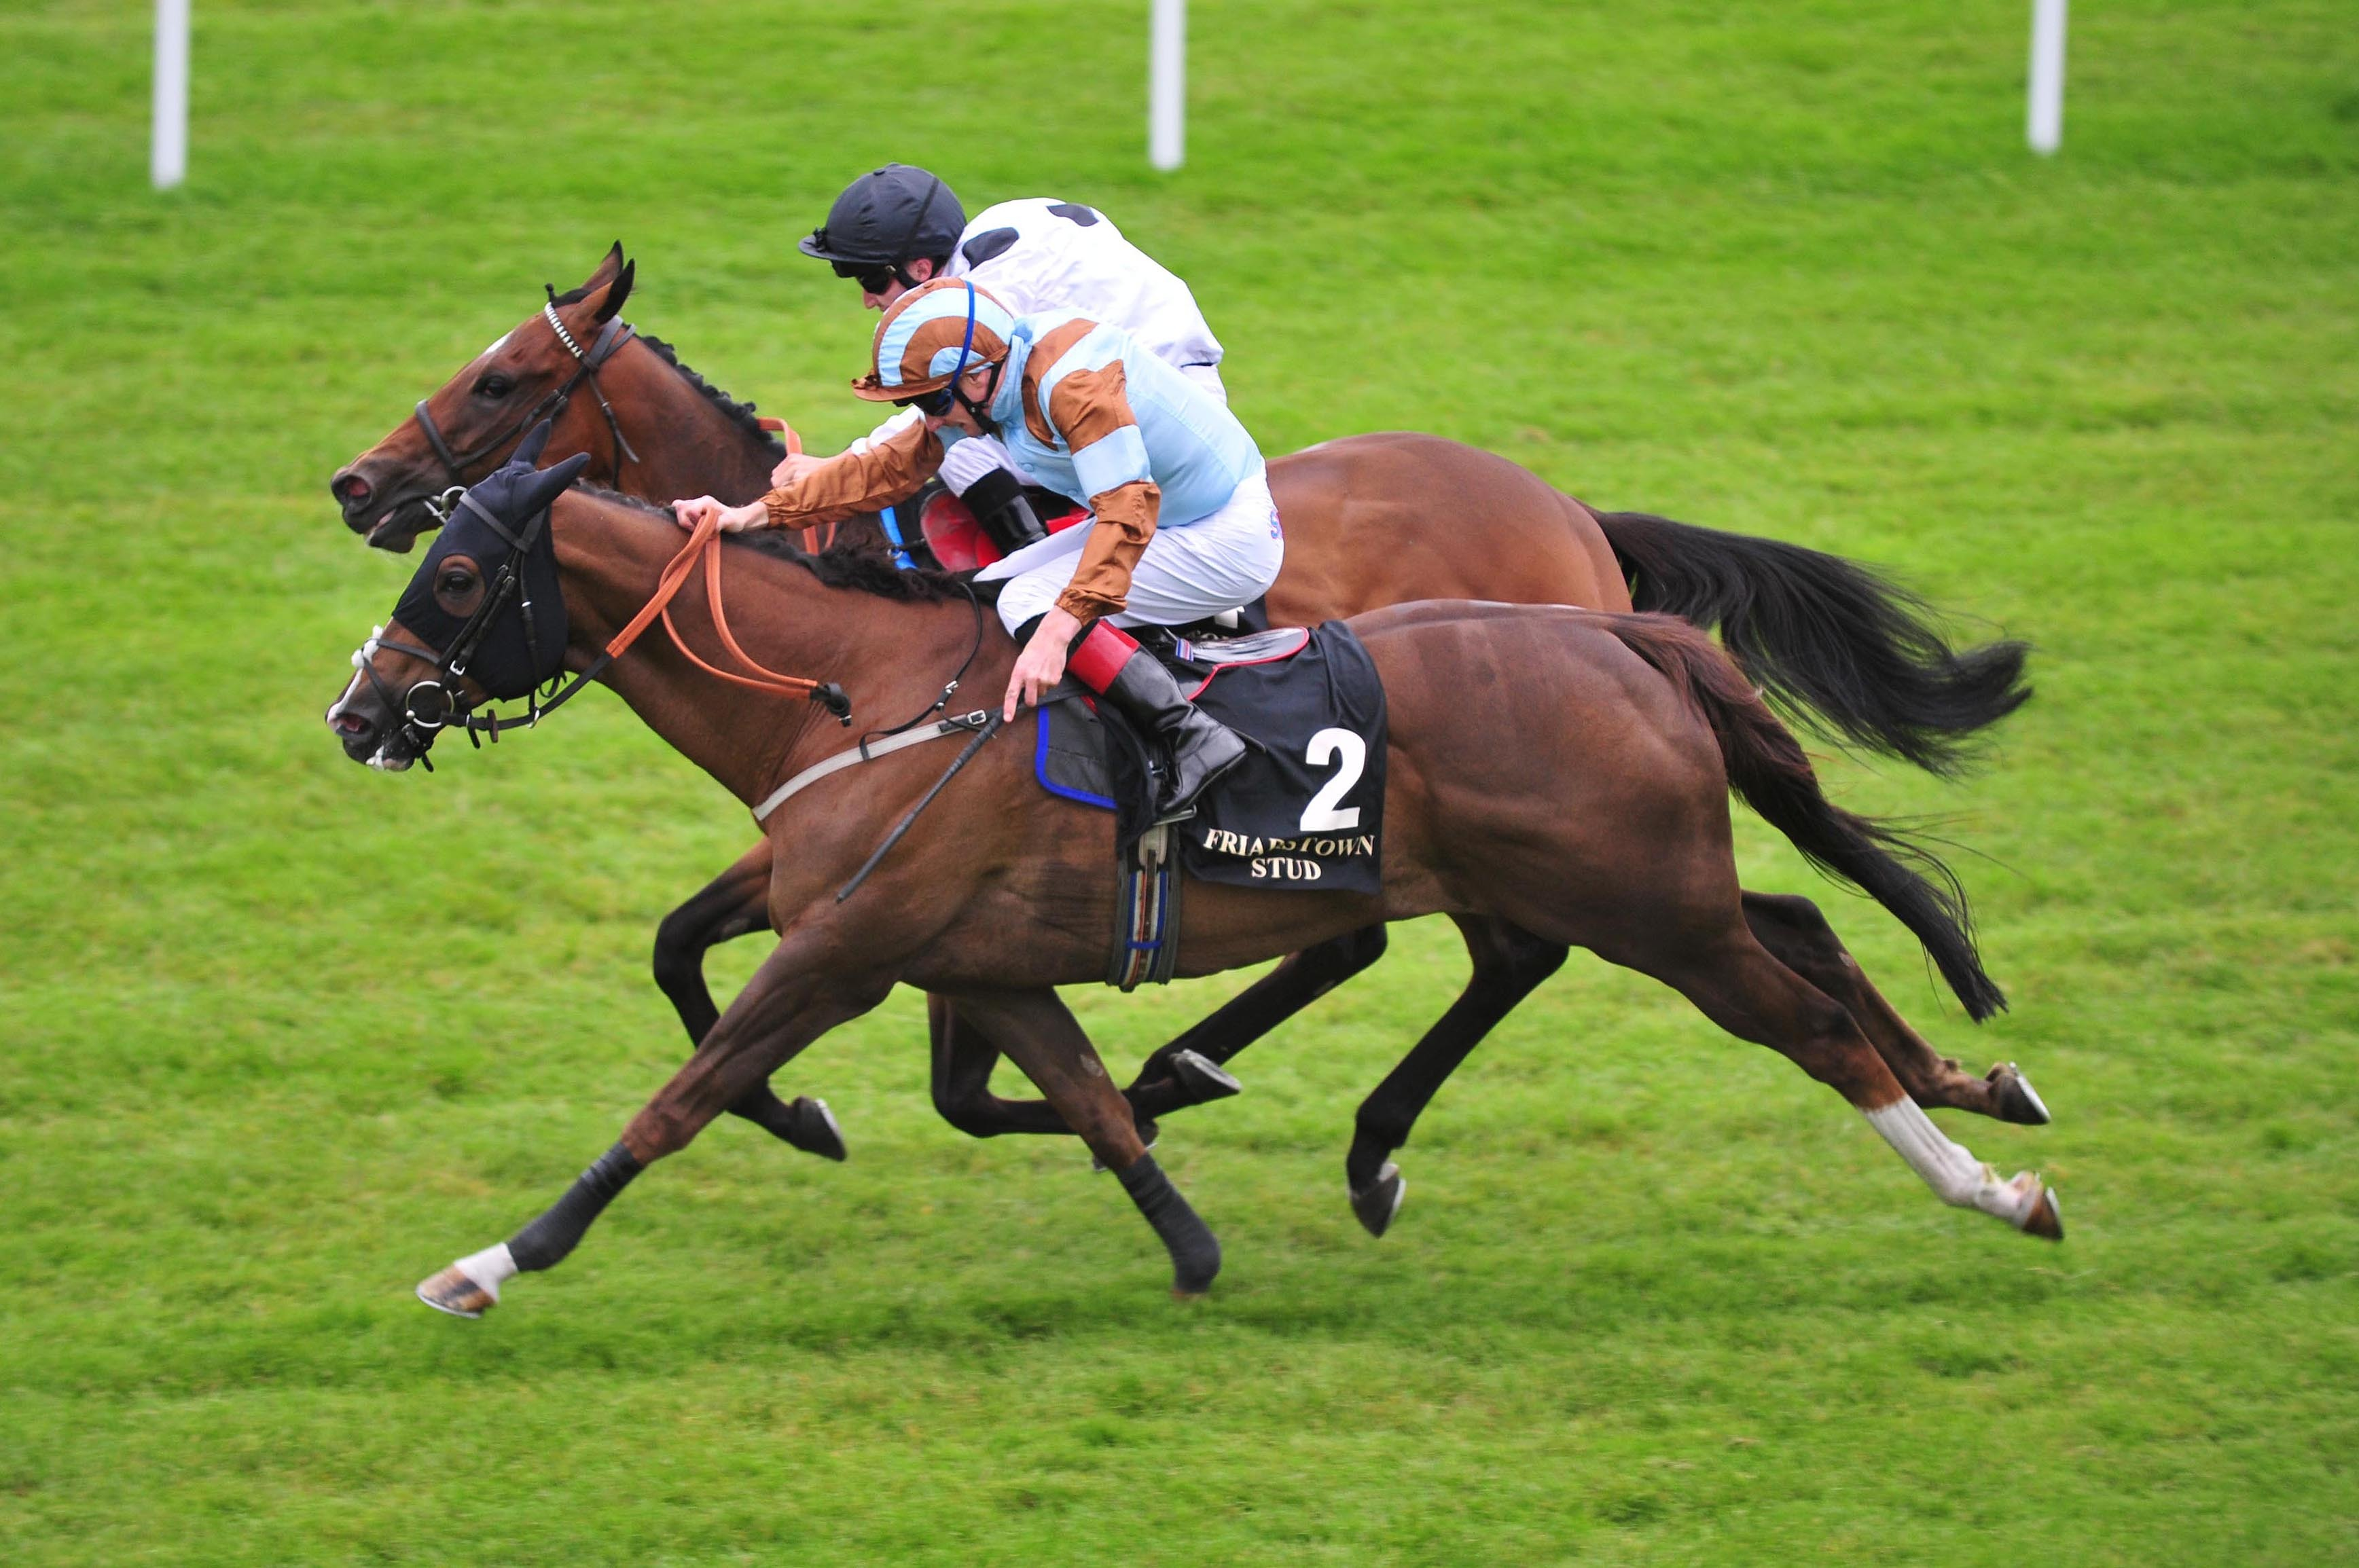 Mick Appleby's veteran sprinter Caspian Prince (nearside) is ready to return to action in the Temple Stakes